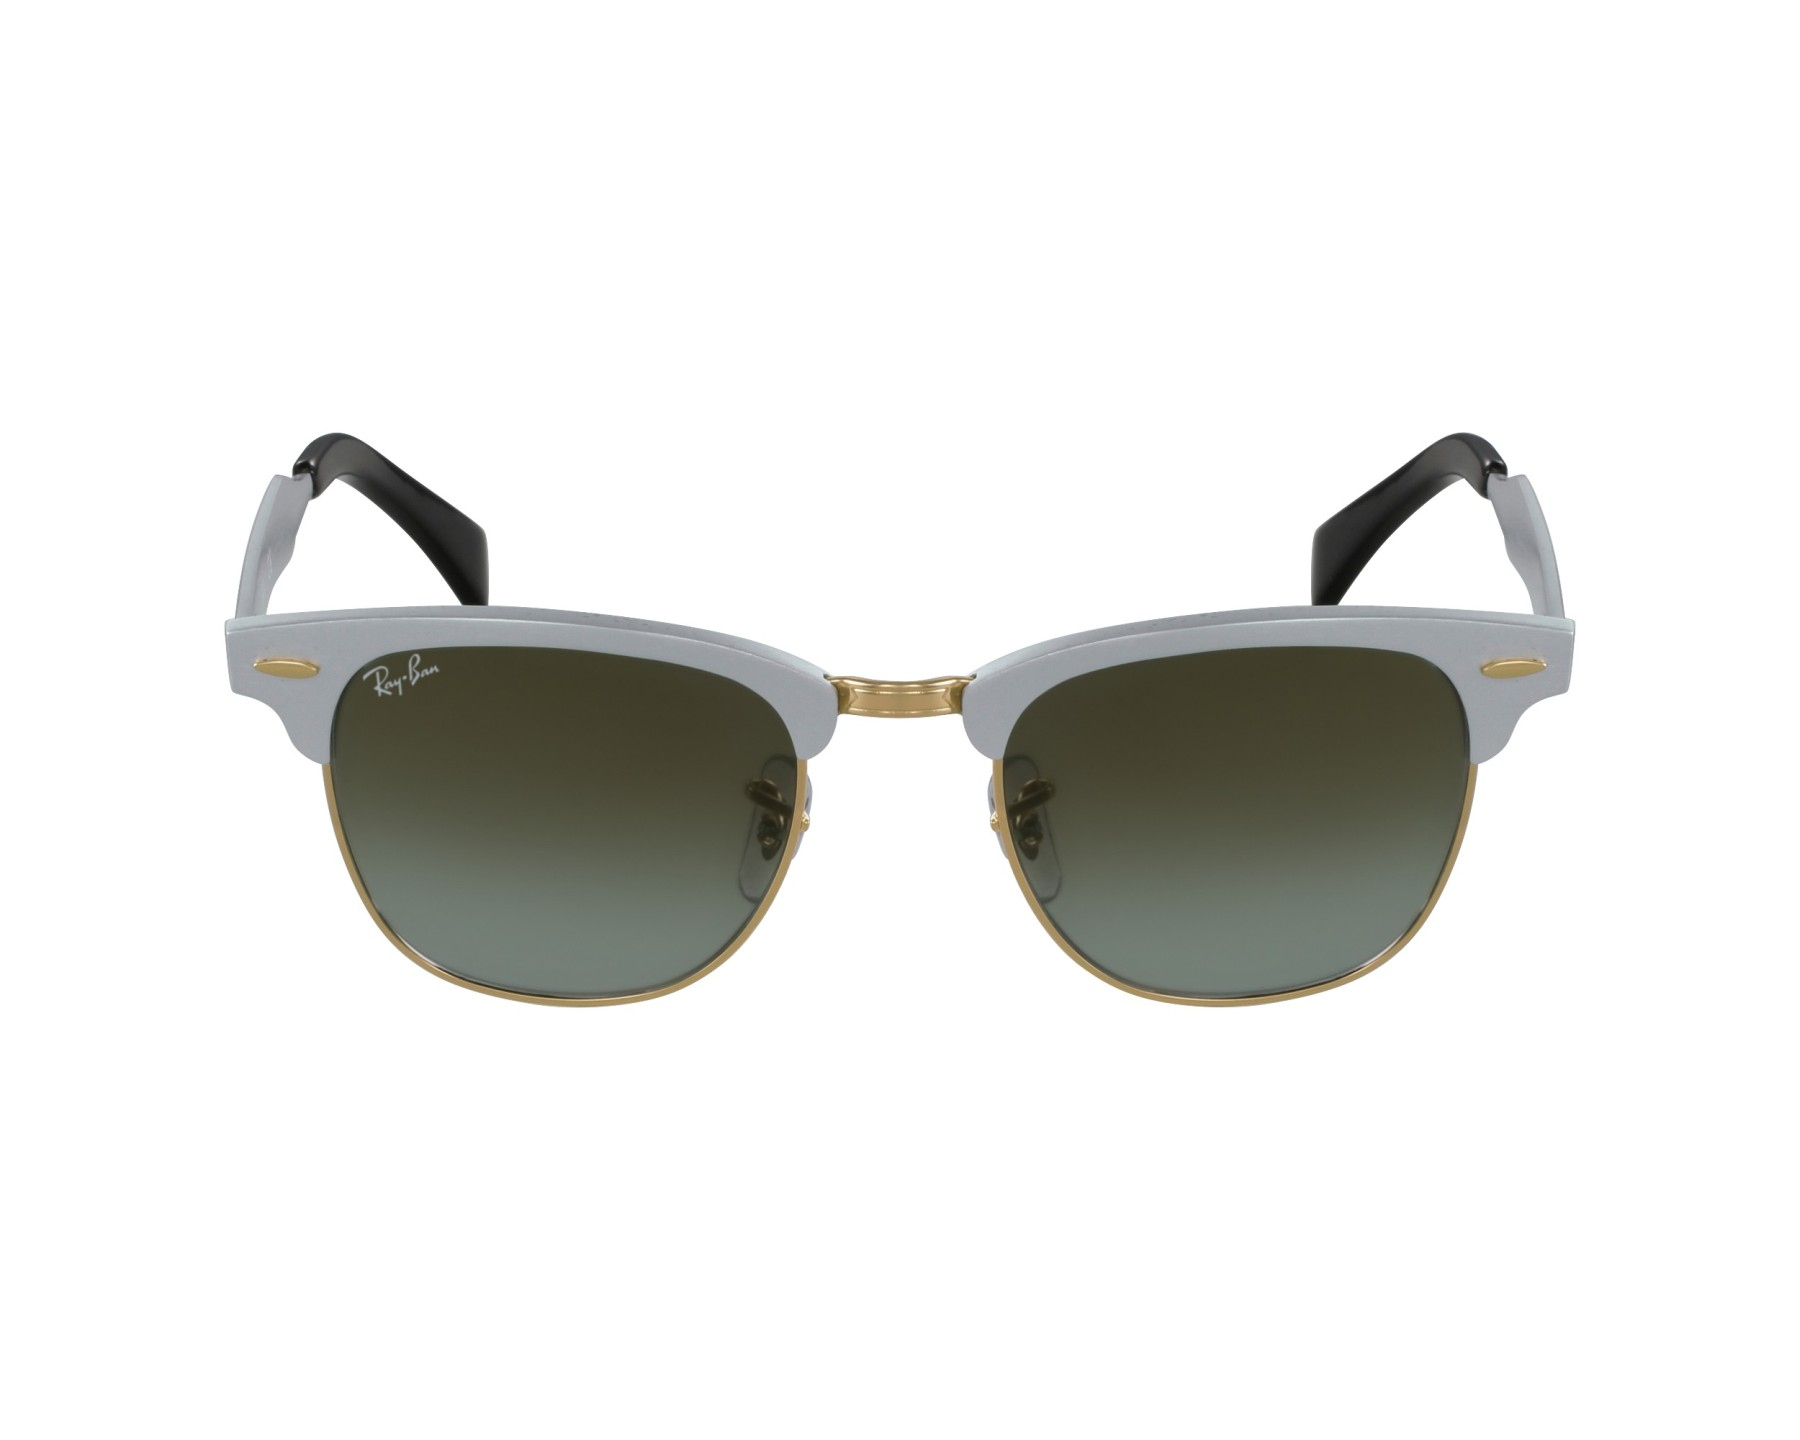 435e1ab4ea Sunglasses Ray-Ban RB-3507 137/9J 51-21 Silver Gold profile